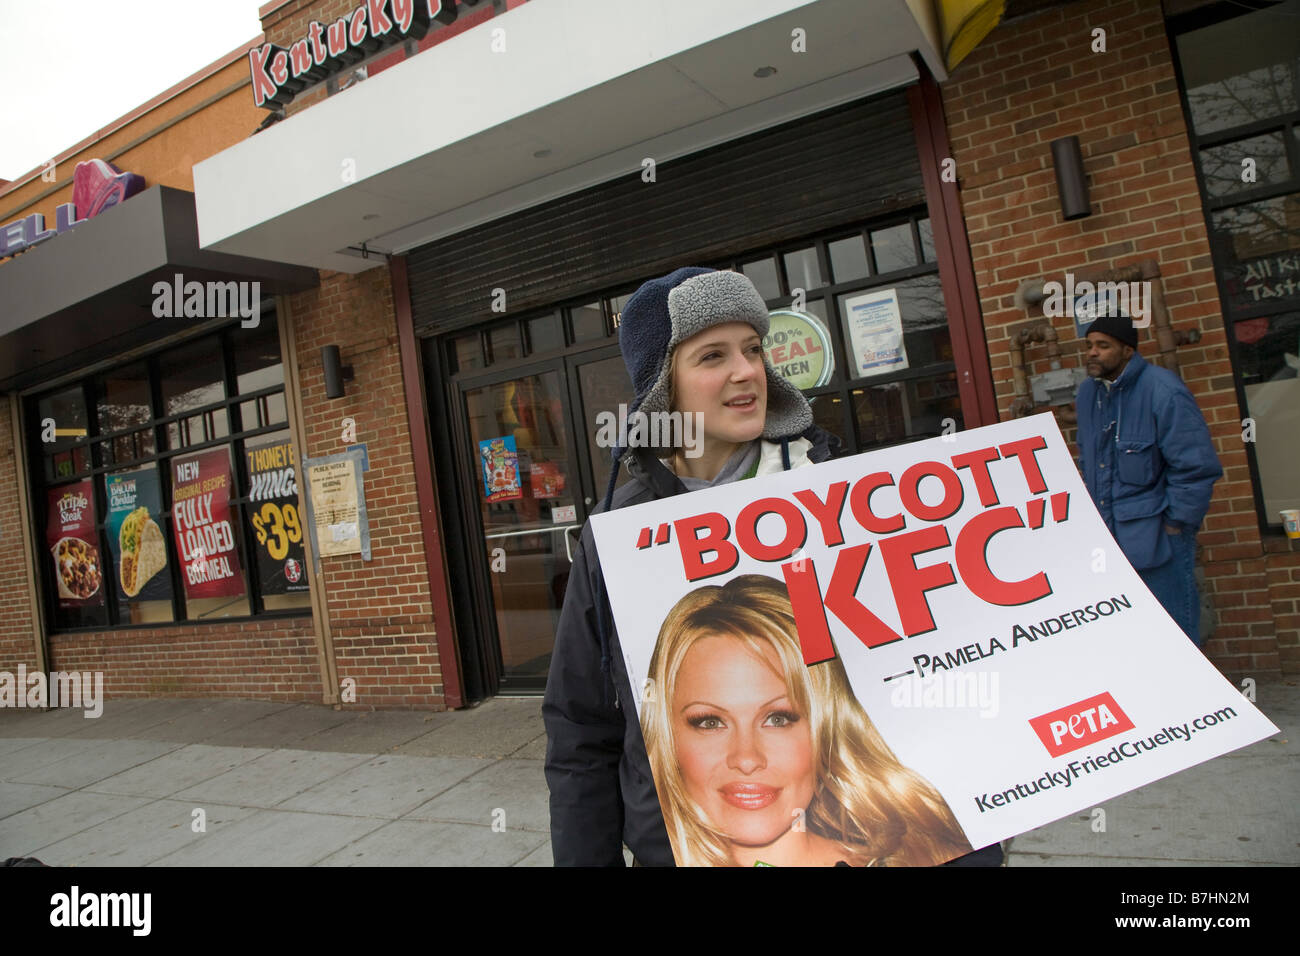 Animal Rights Activists Call for Boycott of KFC - Stock Image